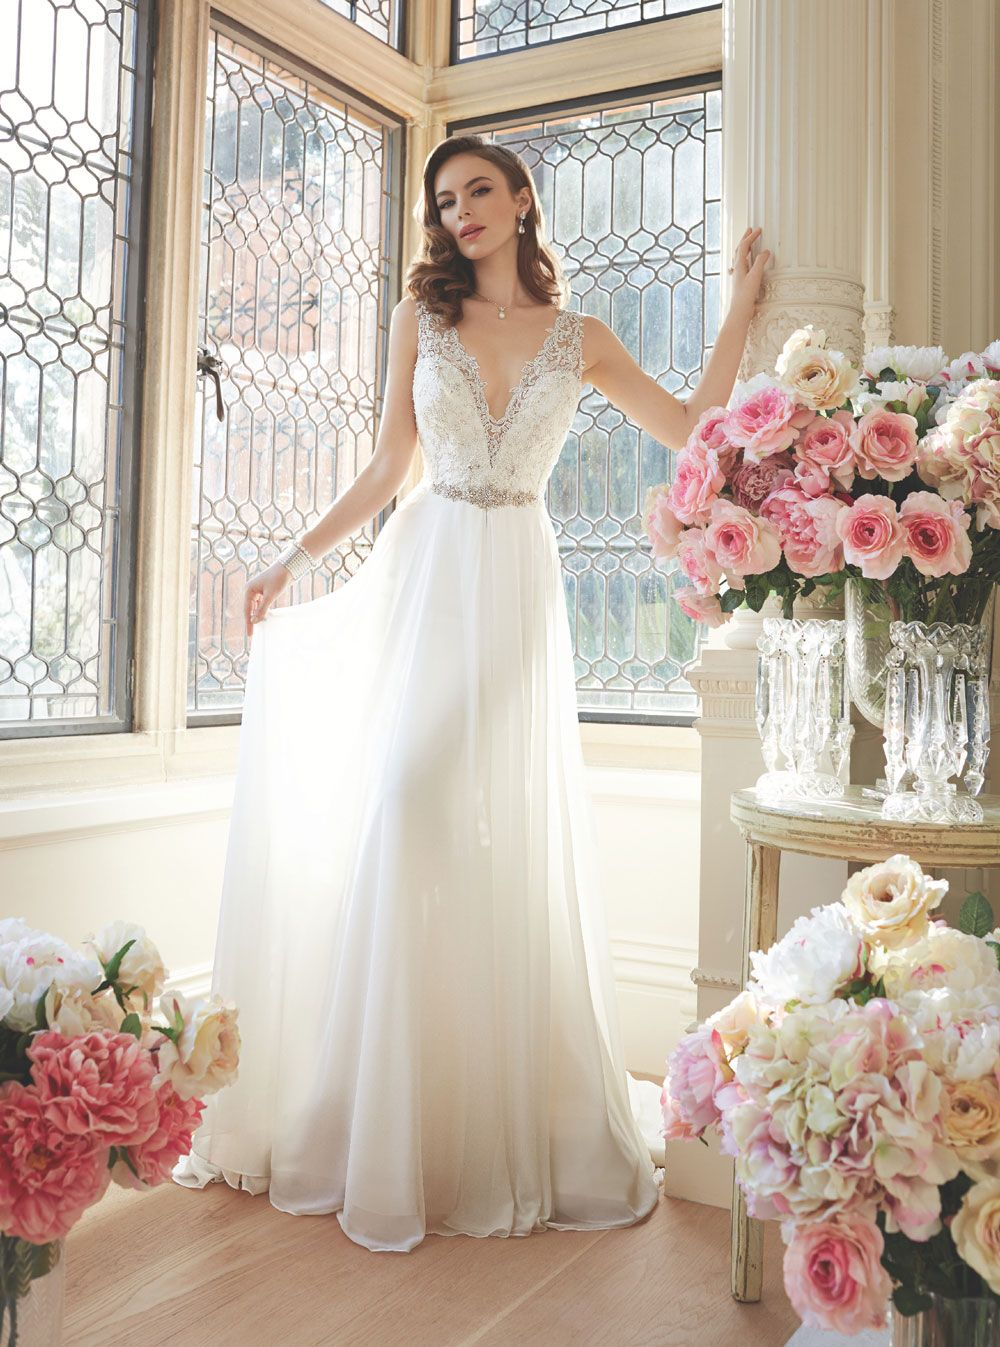 Wedding Dress Y11633 from Spring 2016 Sophia Tolli Bridal Collection ...